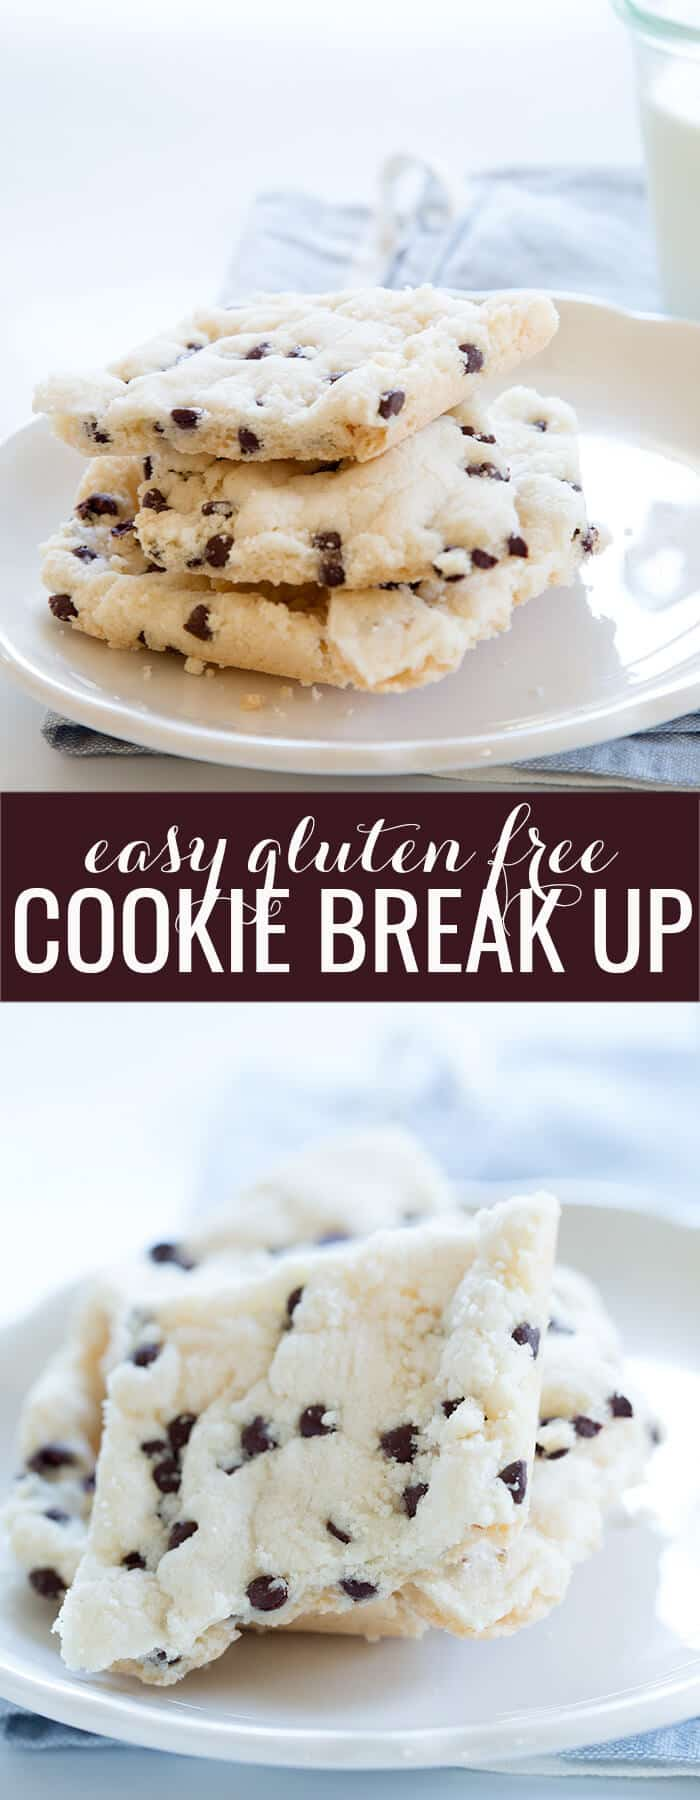 Side view of a stack of cookie break up in white plate and piece of cookie break up below